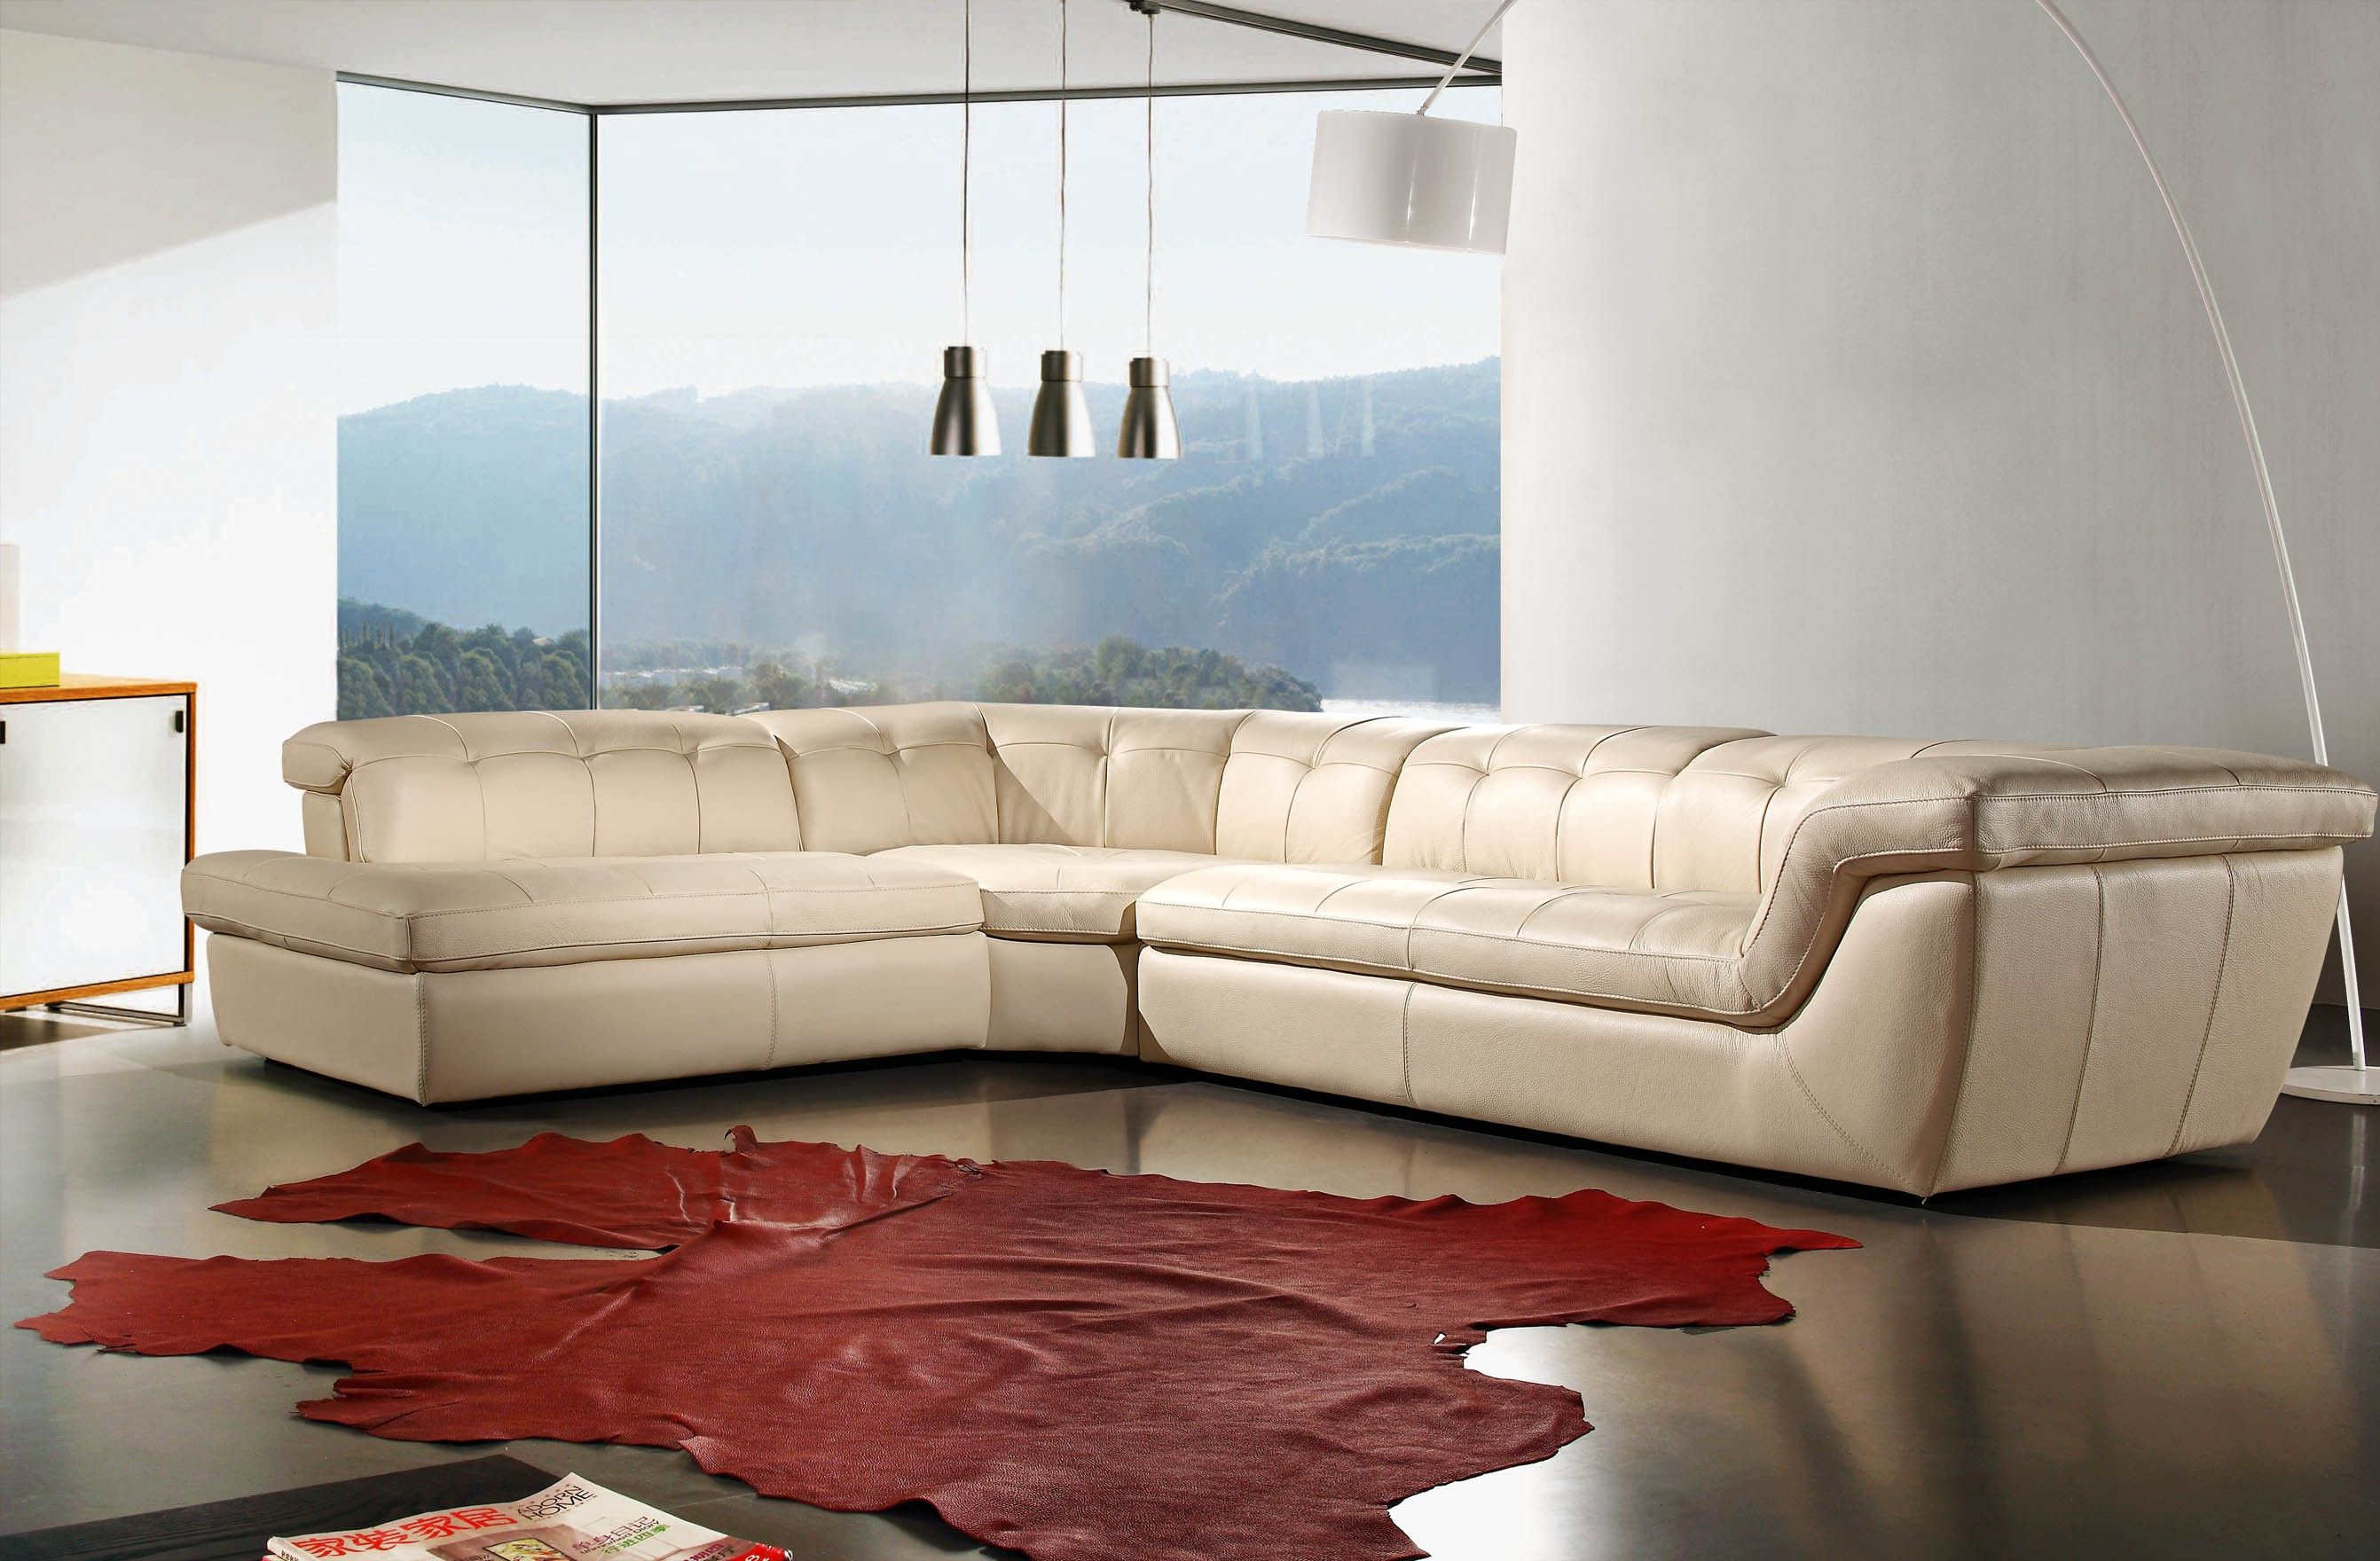 Living Room Design With Sectional Sofa Custom American Contemporary Sofa 10 Тыс Изображений Найдено В Яндекс Design Decoration